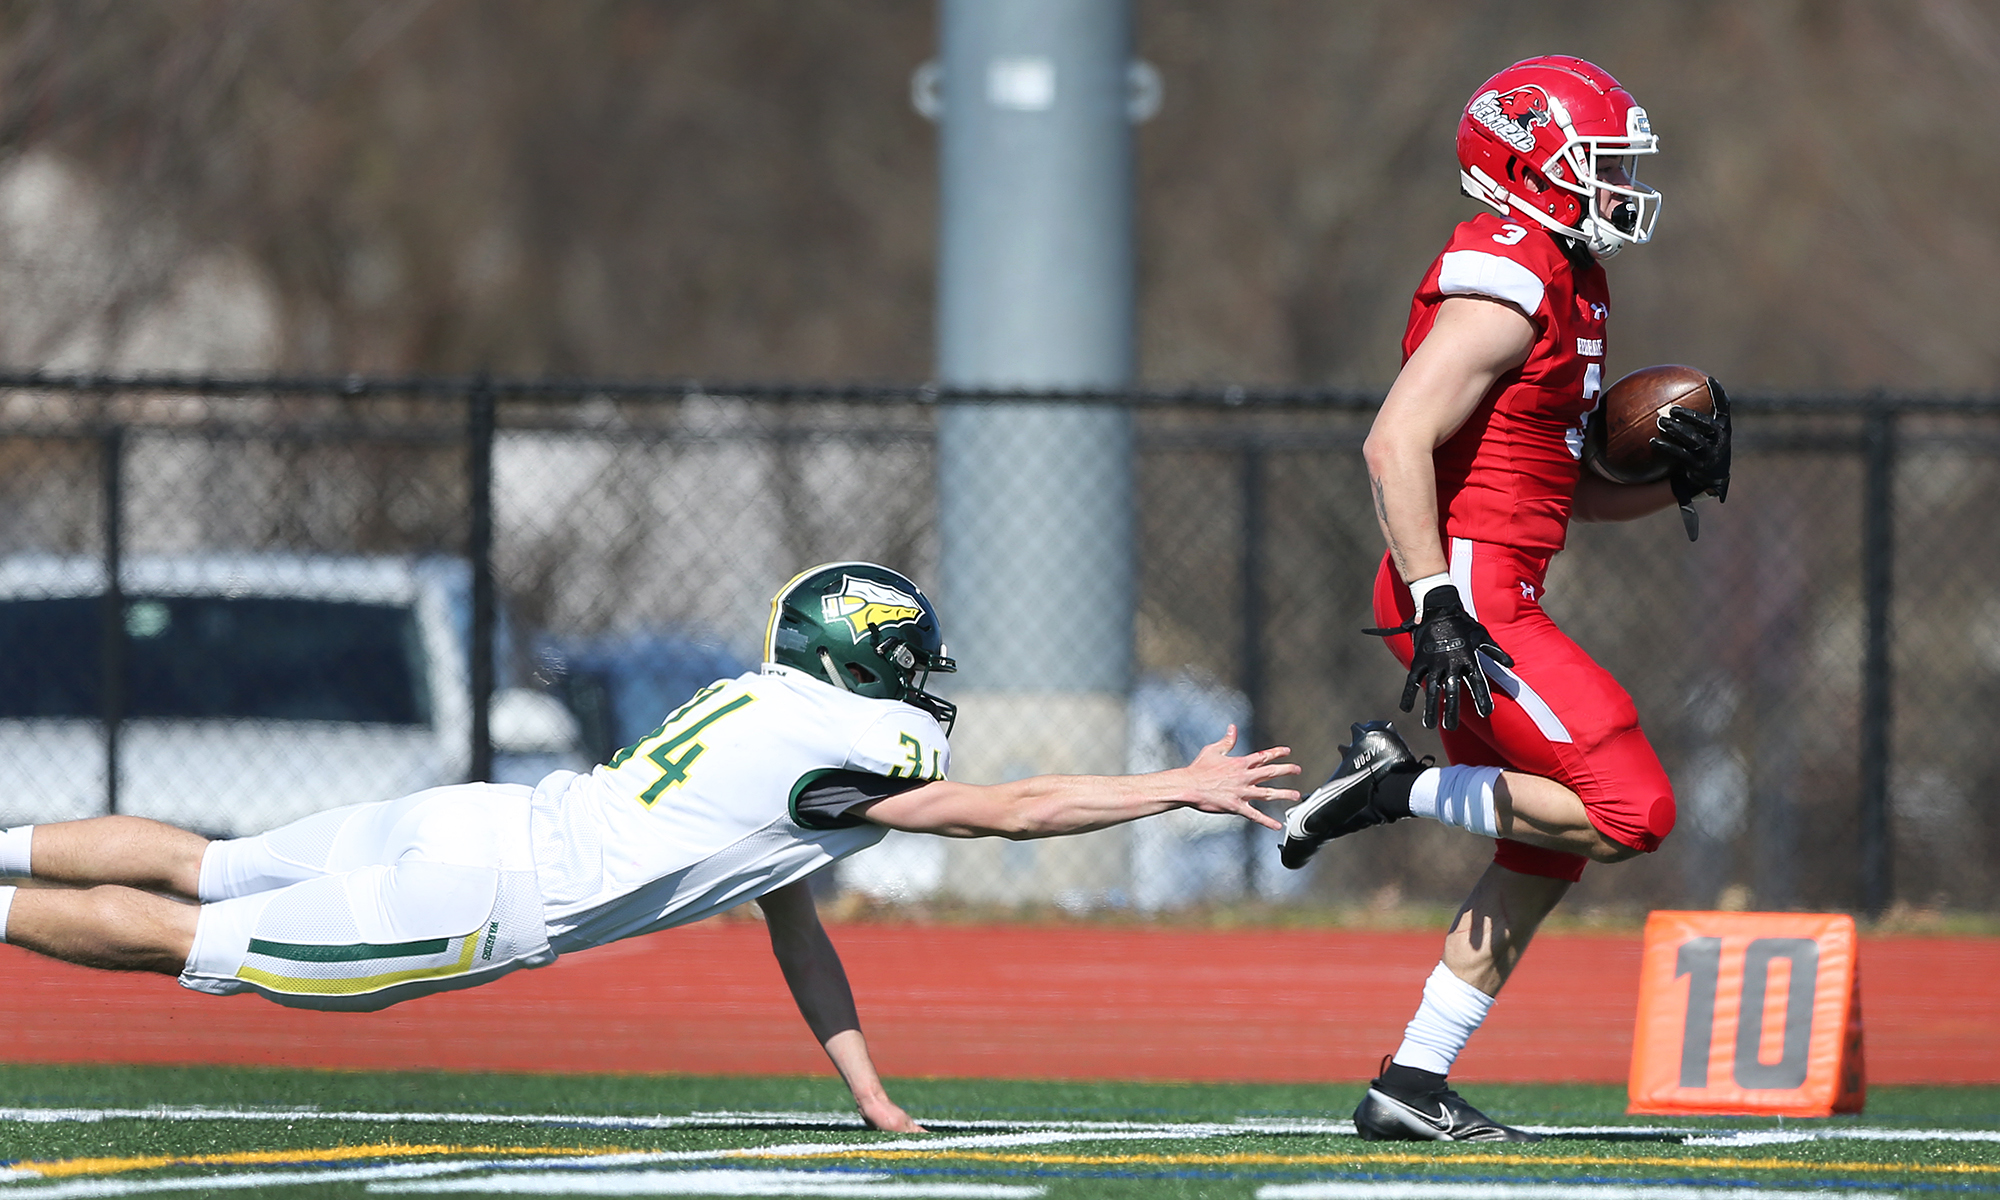 Naperville Central's Antonio Torres (3) is just out of the reach of Waubonsie Valley's Jacob Razo (34).